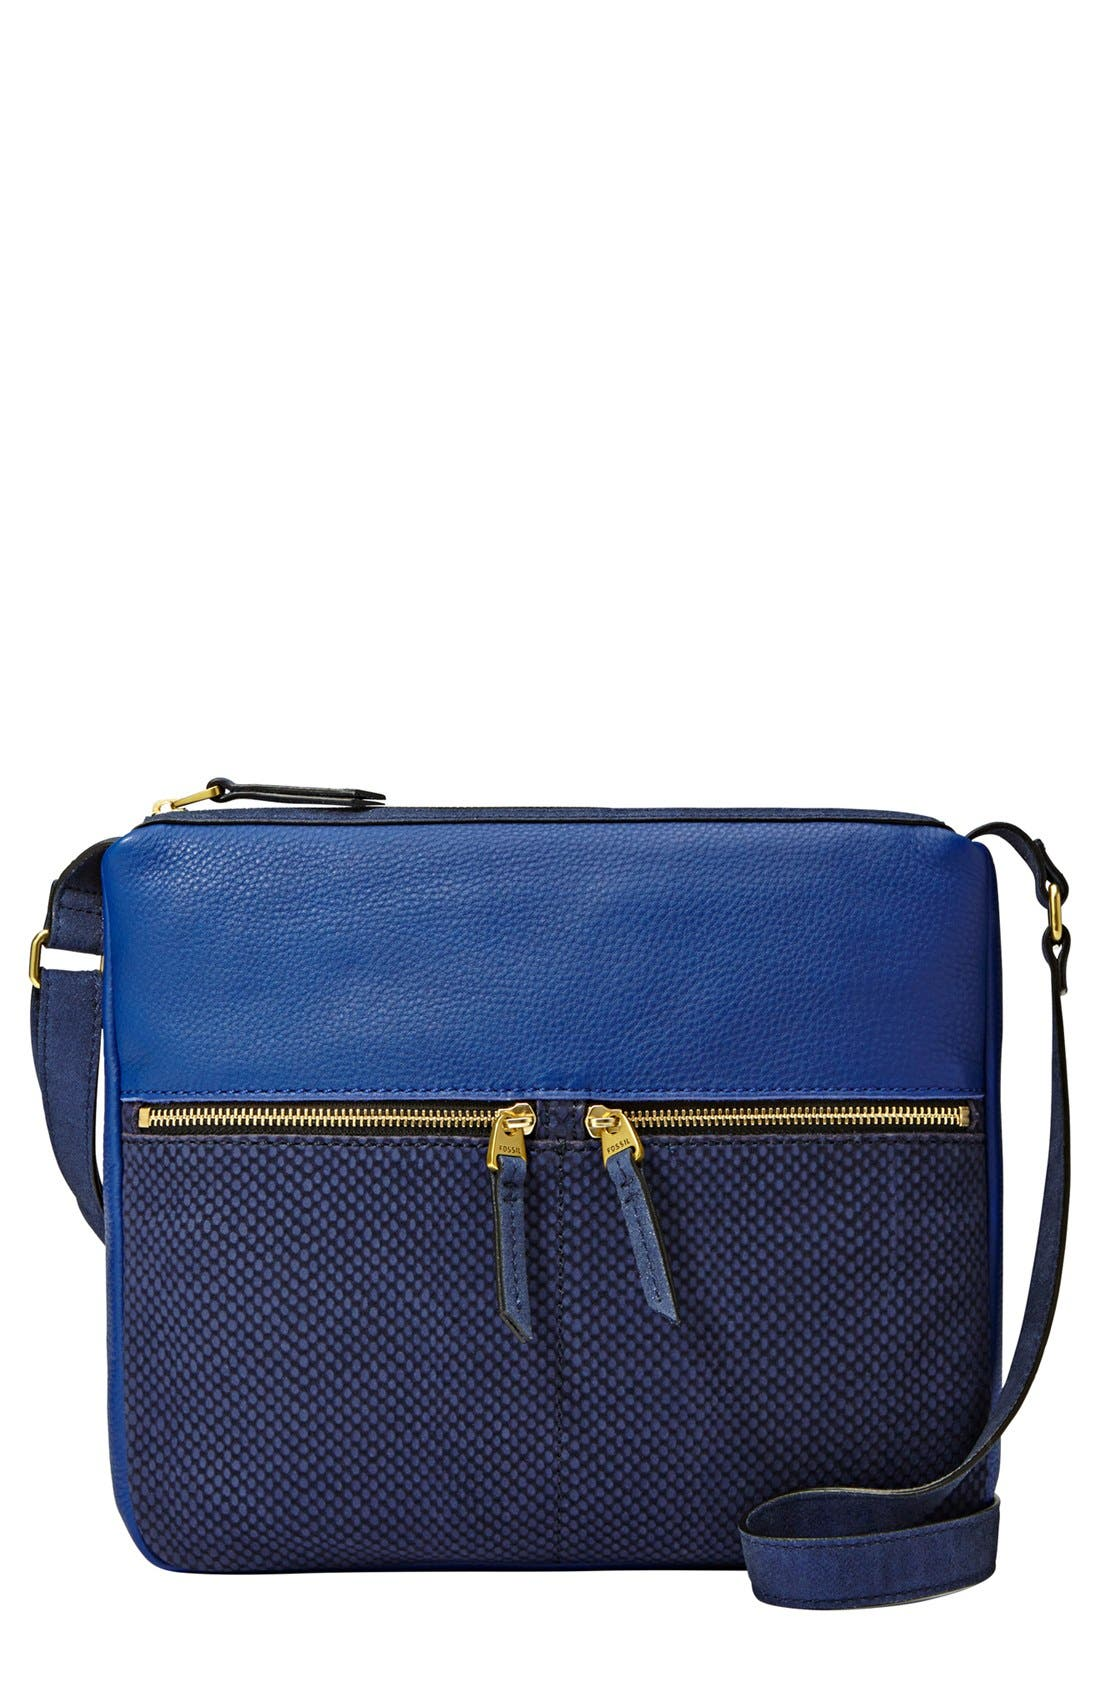 Main Image - Fossil 'Erin' Crossbody Bag